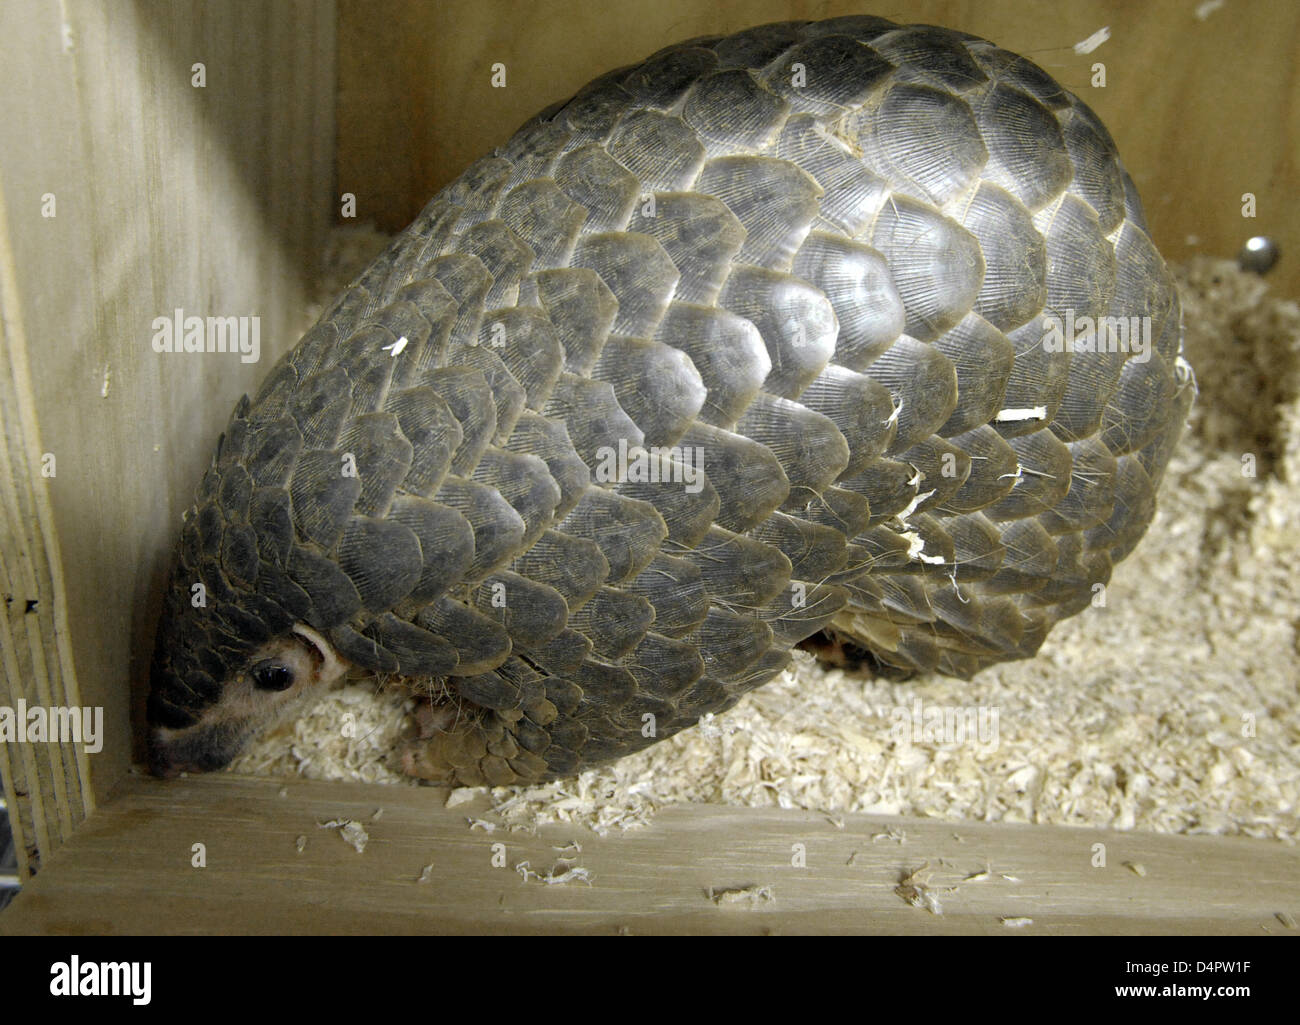 Quesan, the only living female pangolin in Europe, in her quarantine box at Leipzig?s zoo, Germany, 03 September - Stock Image